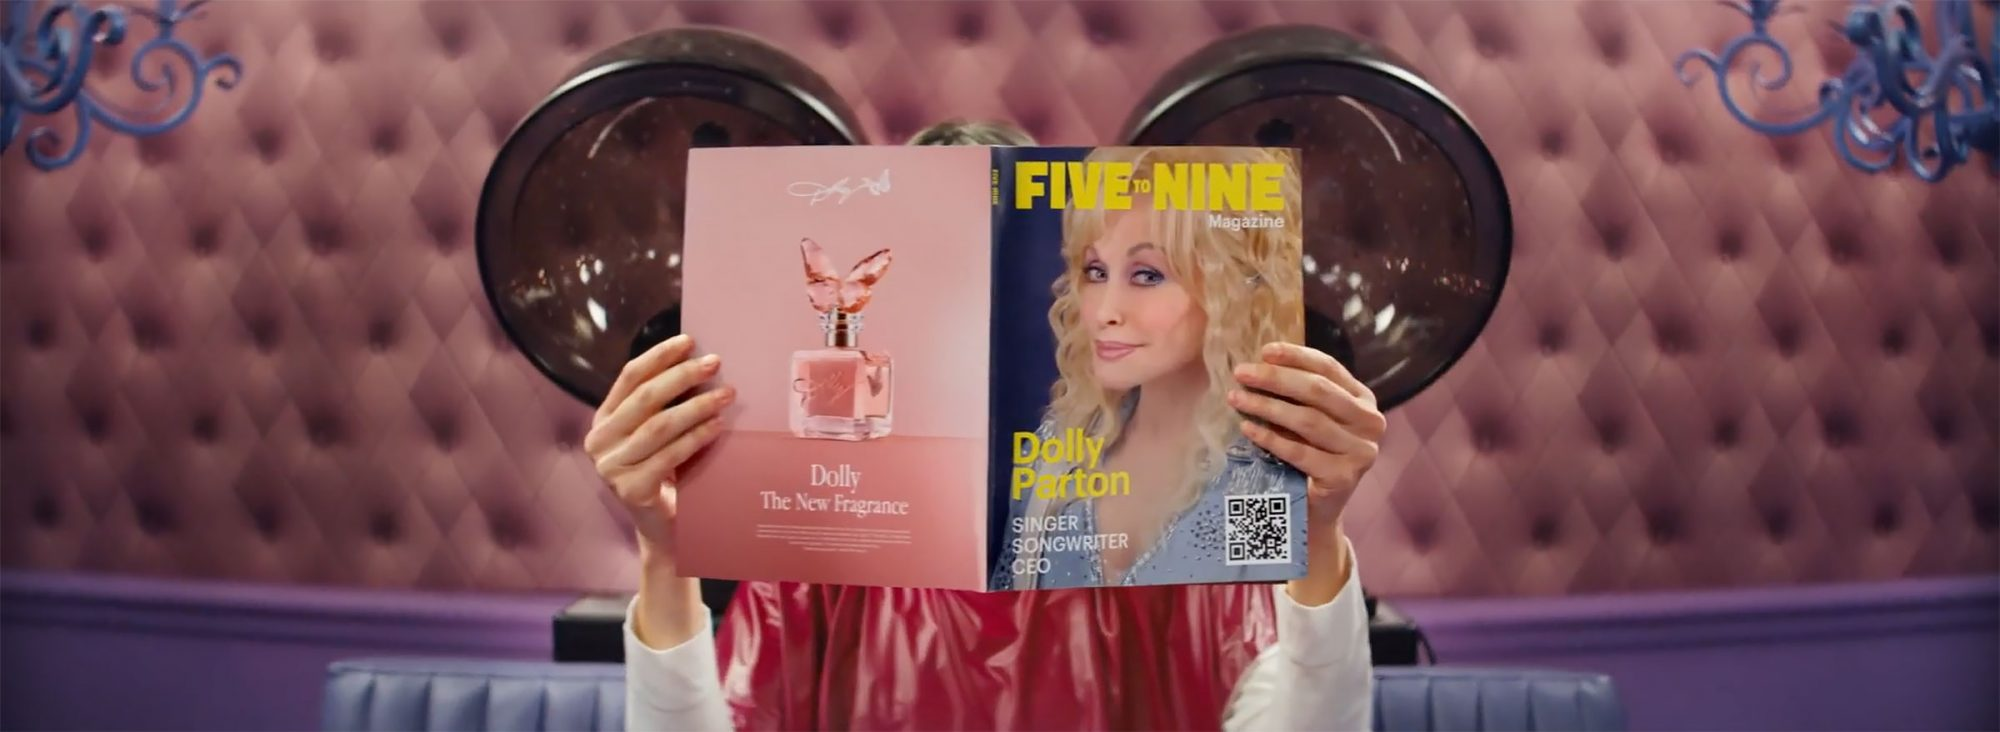 Dolly Parton - 5 to 9 Commercial